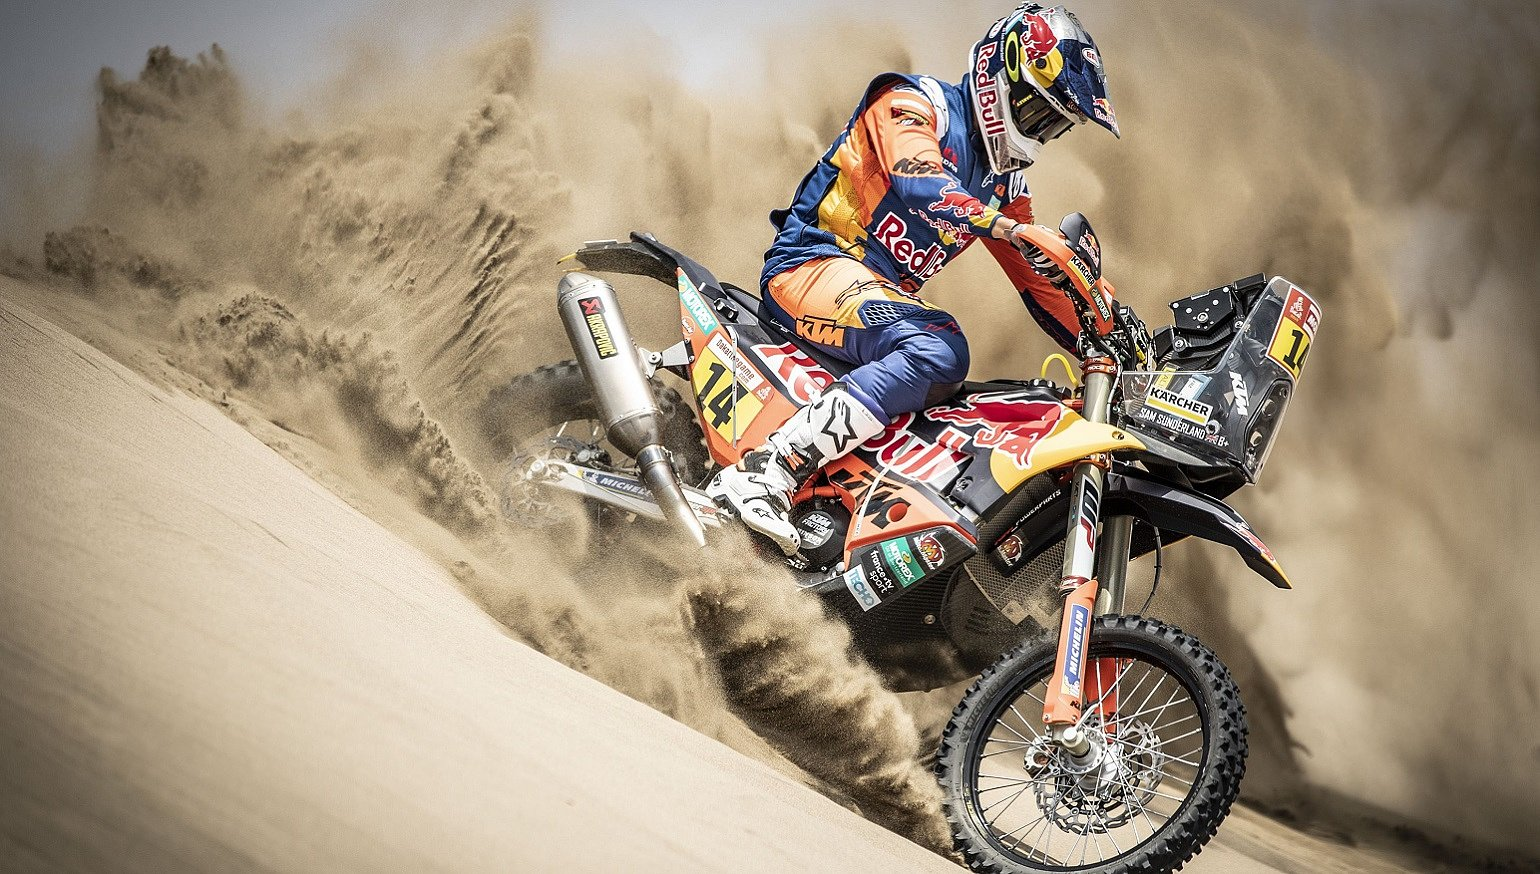 The Dakar Rally's new route goes through some unwelcoming